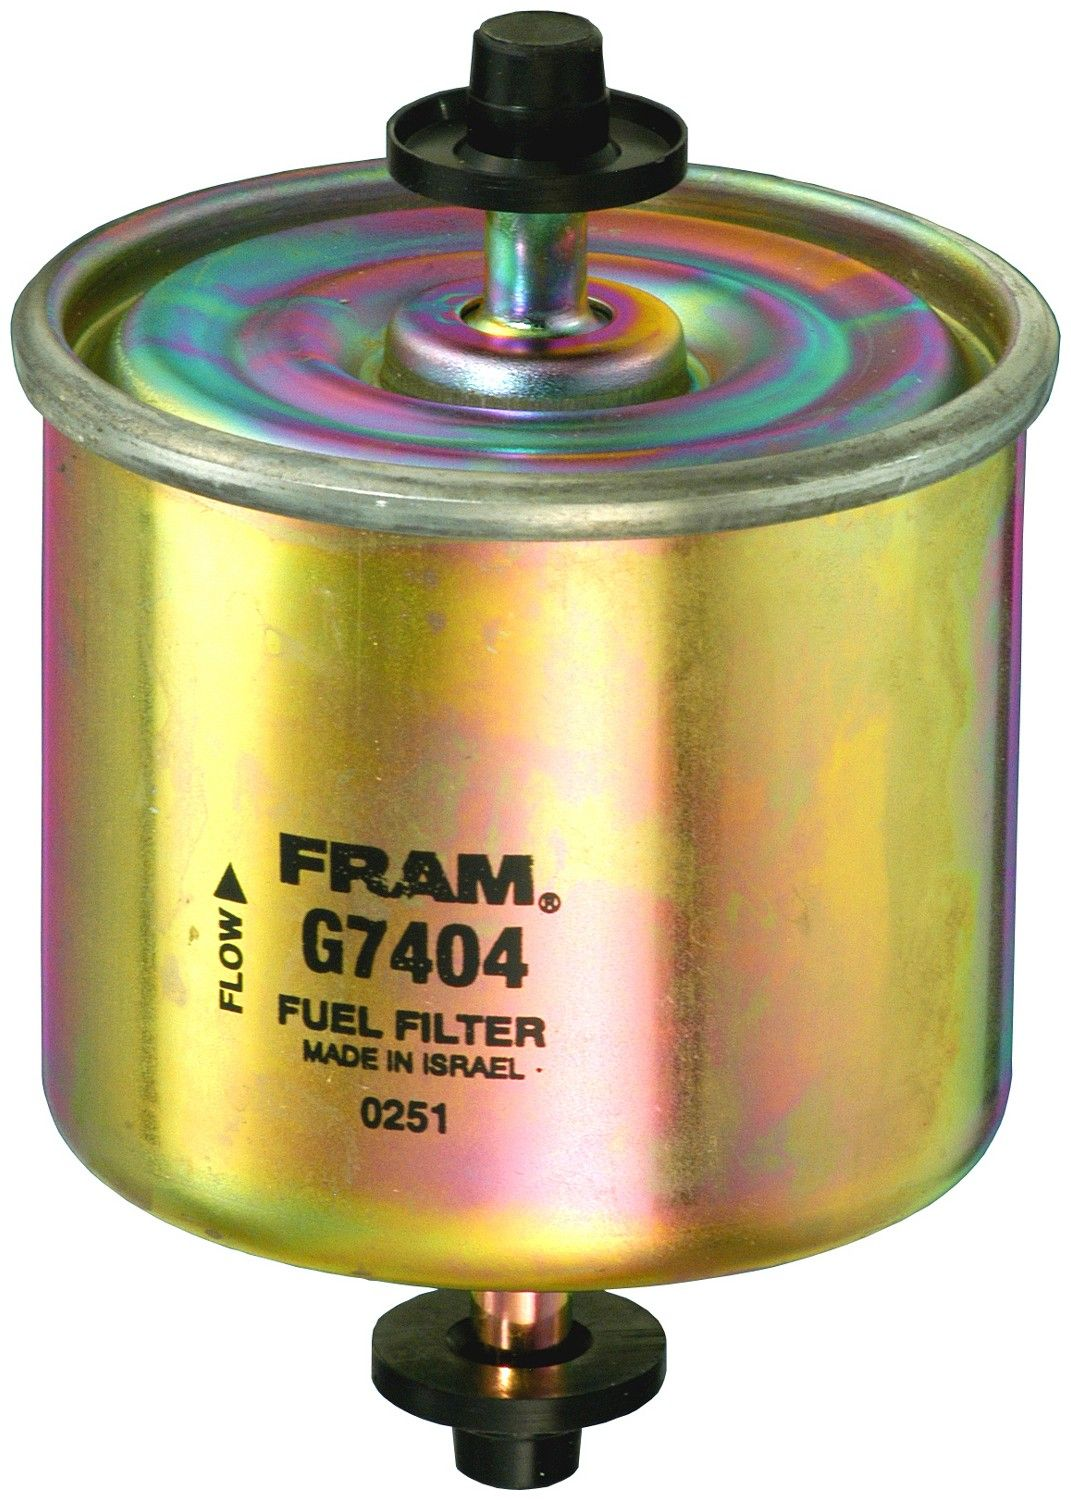 Mercedes Benz 450sl Fuel Filter Replacement Beck Arnley Fram 1973 G7404 In Line Unit Box Product